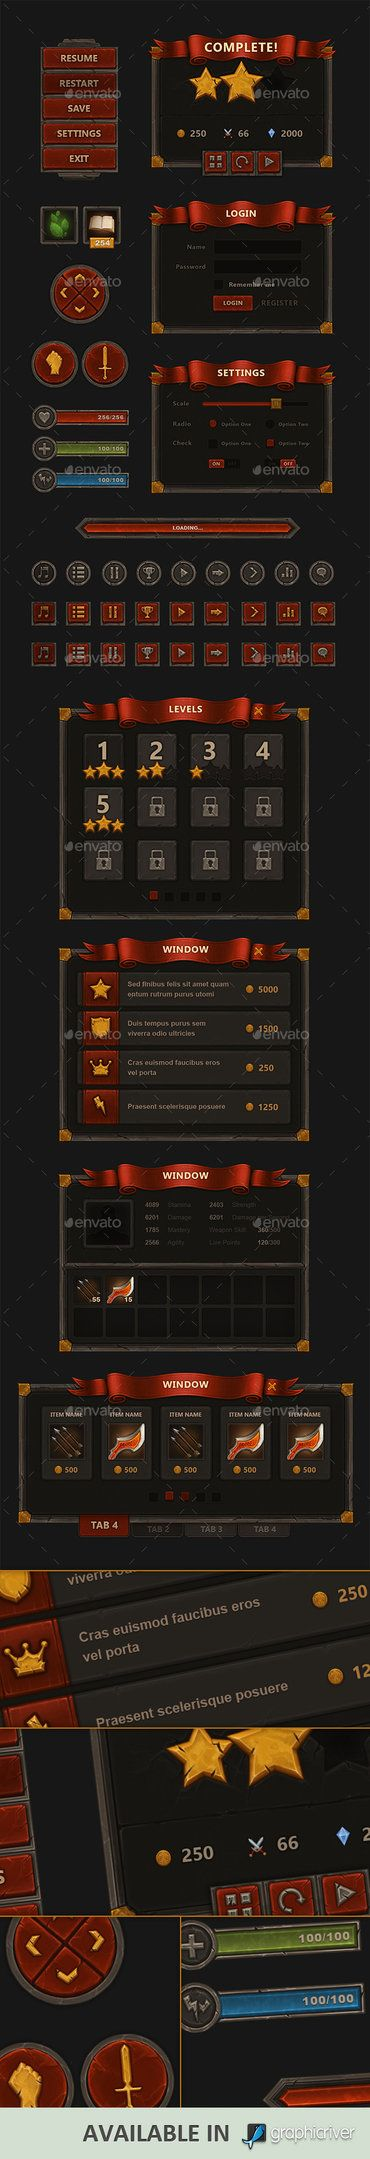 Fantasy Mobile Game Interface - http://graphicriver.net/item/fantasy-mobile-game-interface/9009432?WT.ac=portfolio&WT.z_author=KEvil